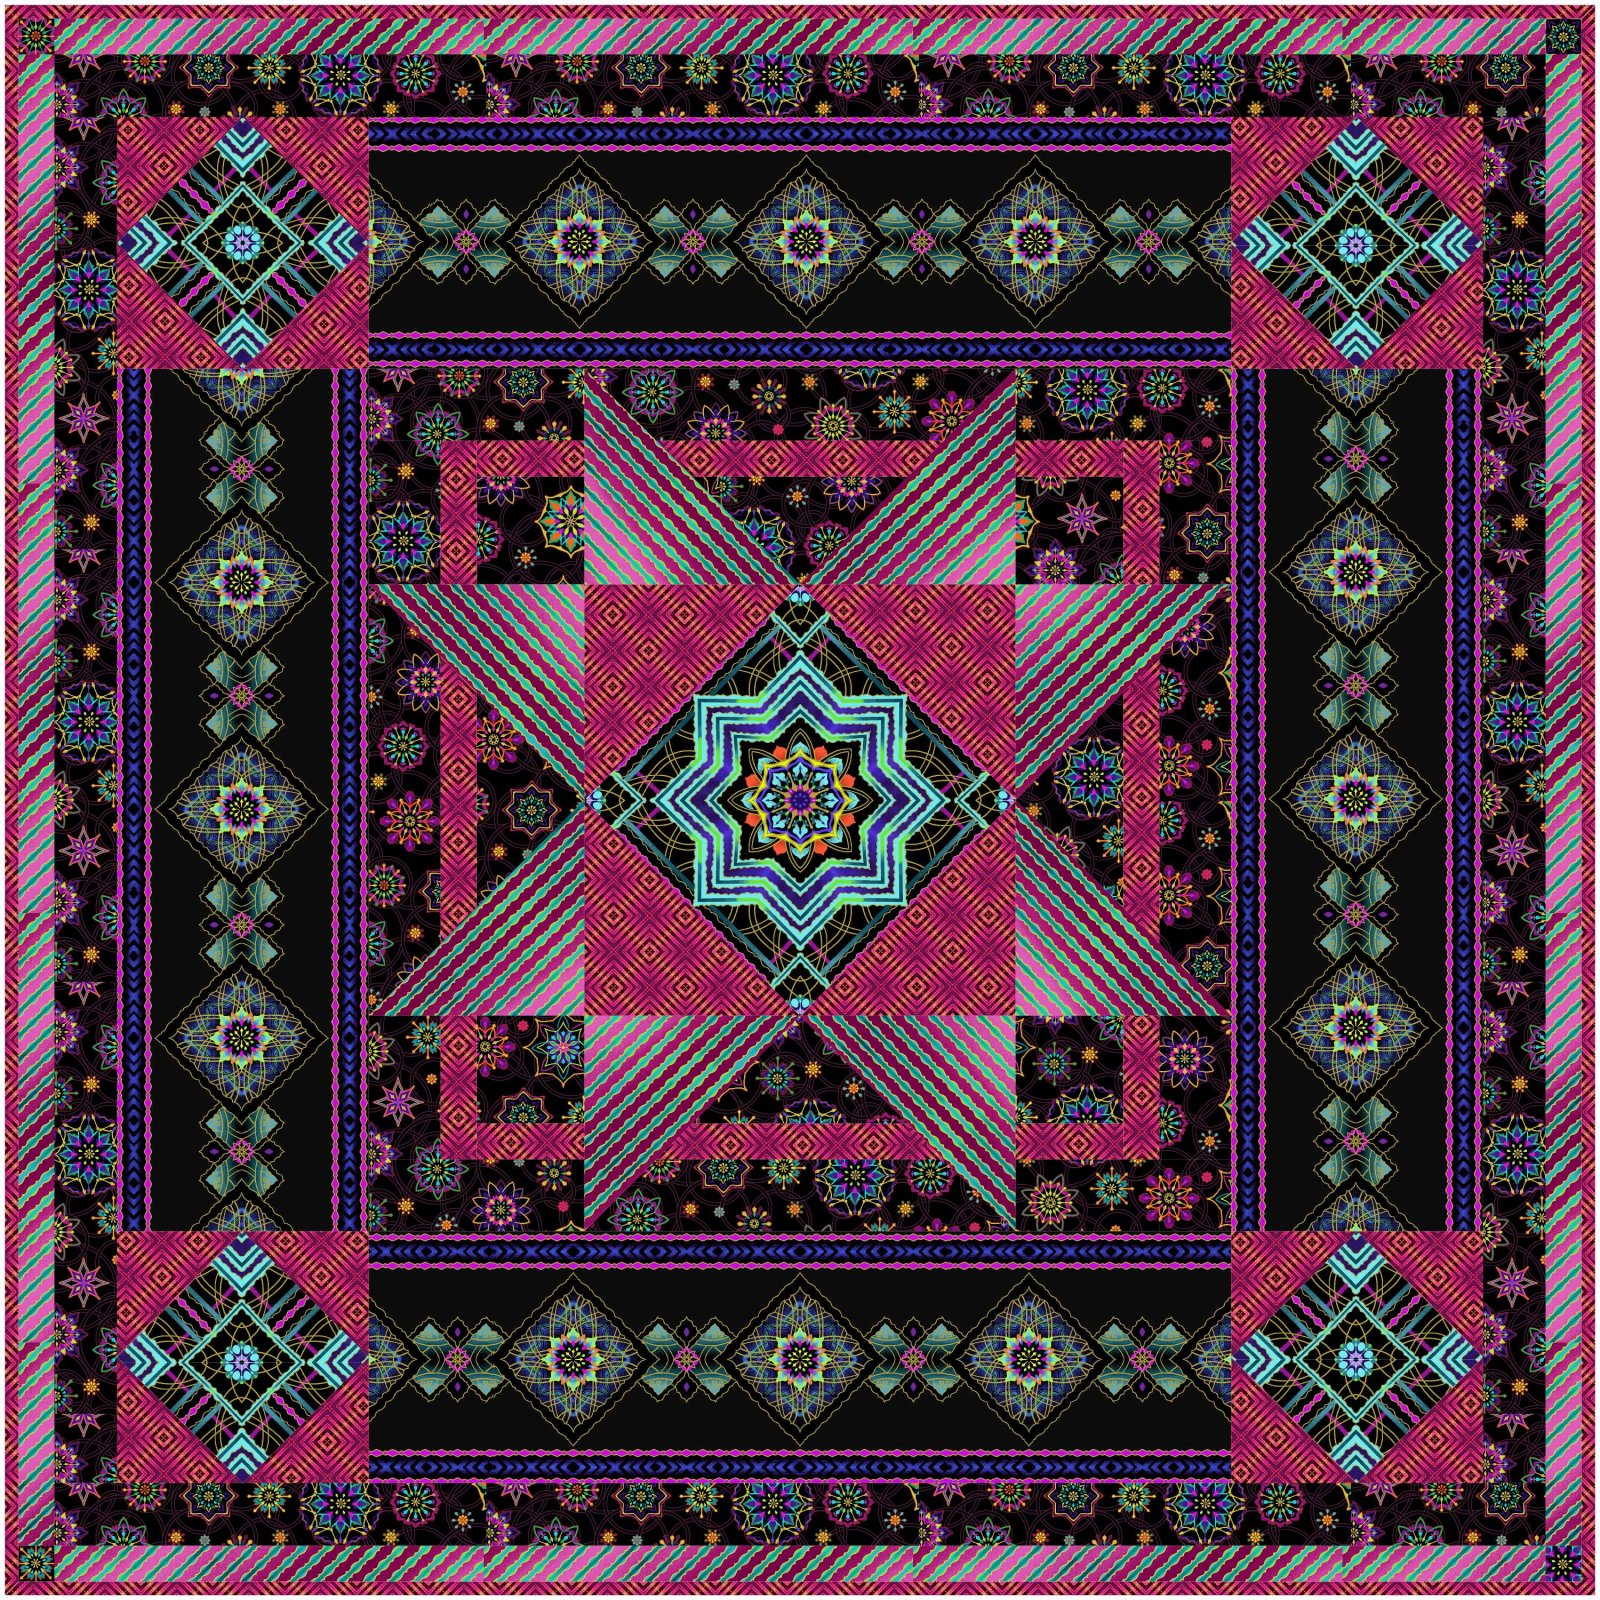 Gypsy Jewel Box quilt kit by Helle-May Designs for Windham Fabrics HMD-130